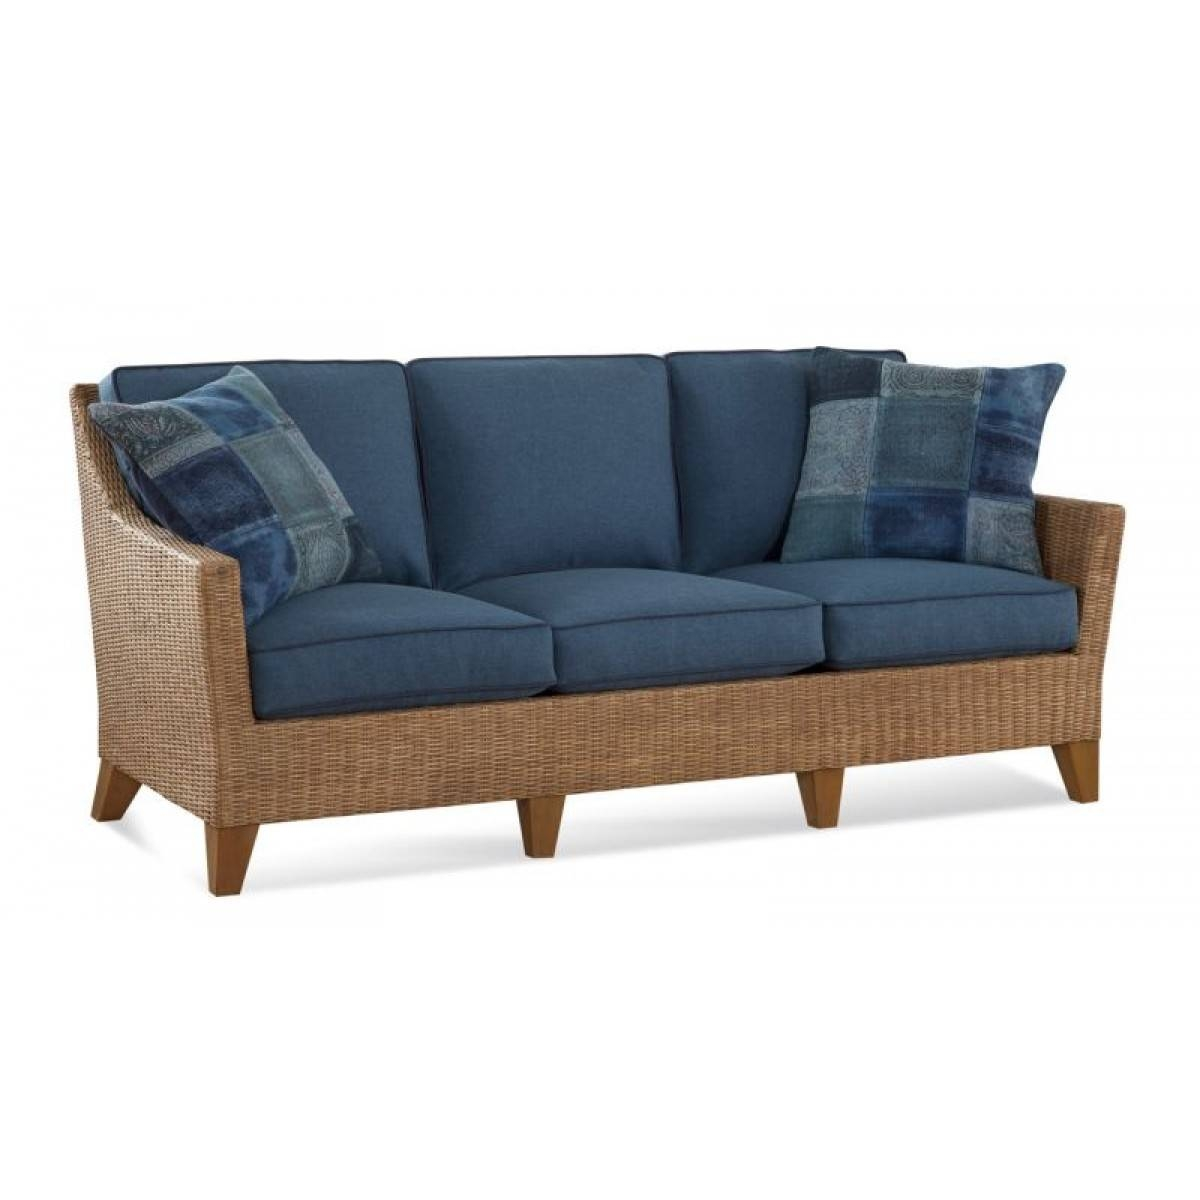 Braxton Culler Chapel Wood Seating | Patiosusa for Braxton Culler Sofas (Image 4 of 15)